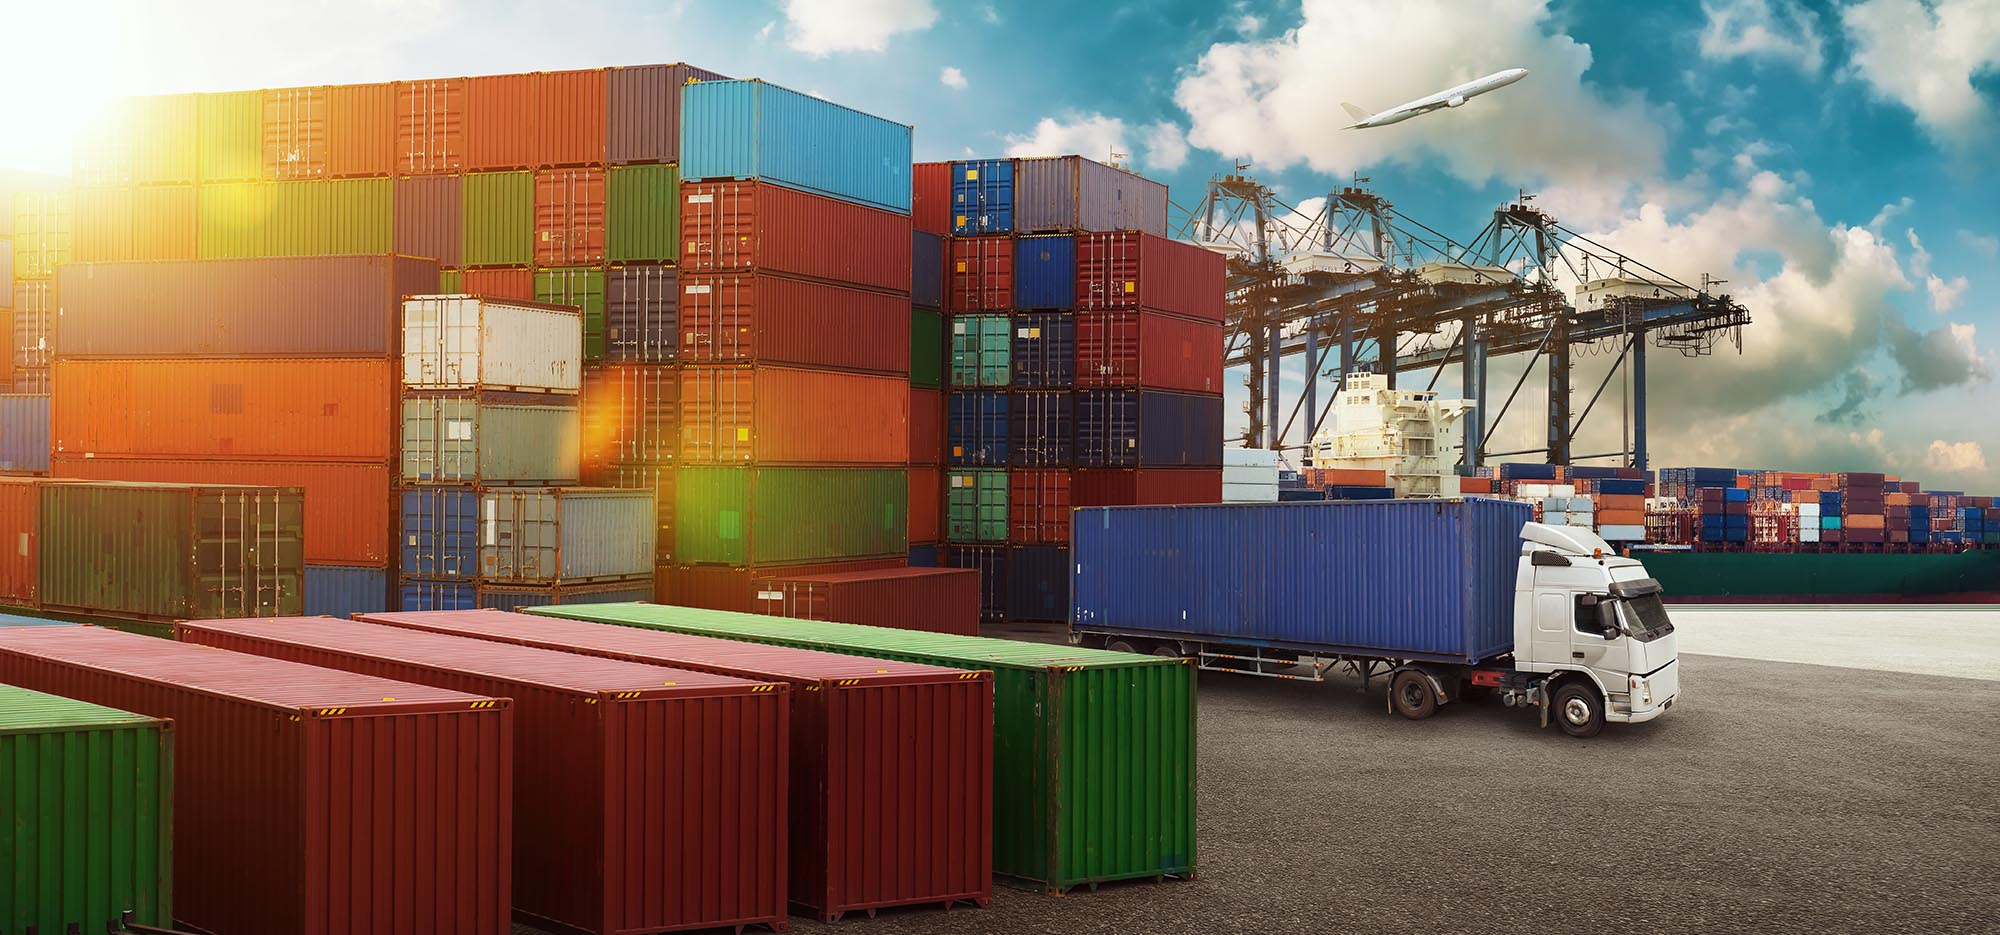 5 Considerations Before Shifting Your Supply Chain to Bangladesh